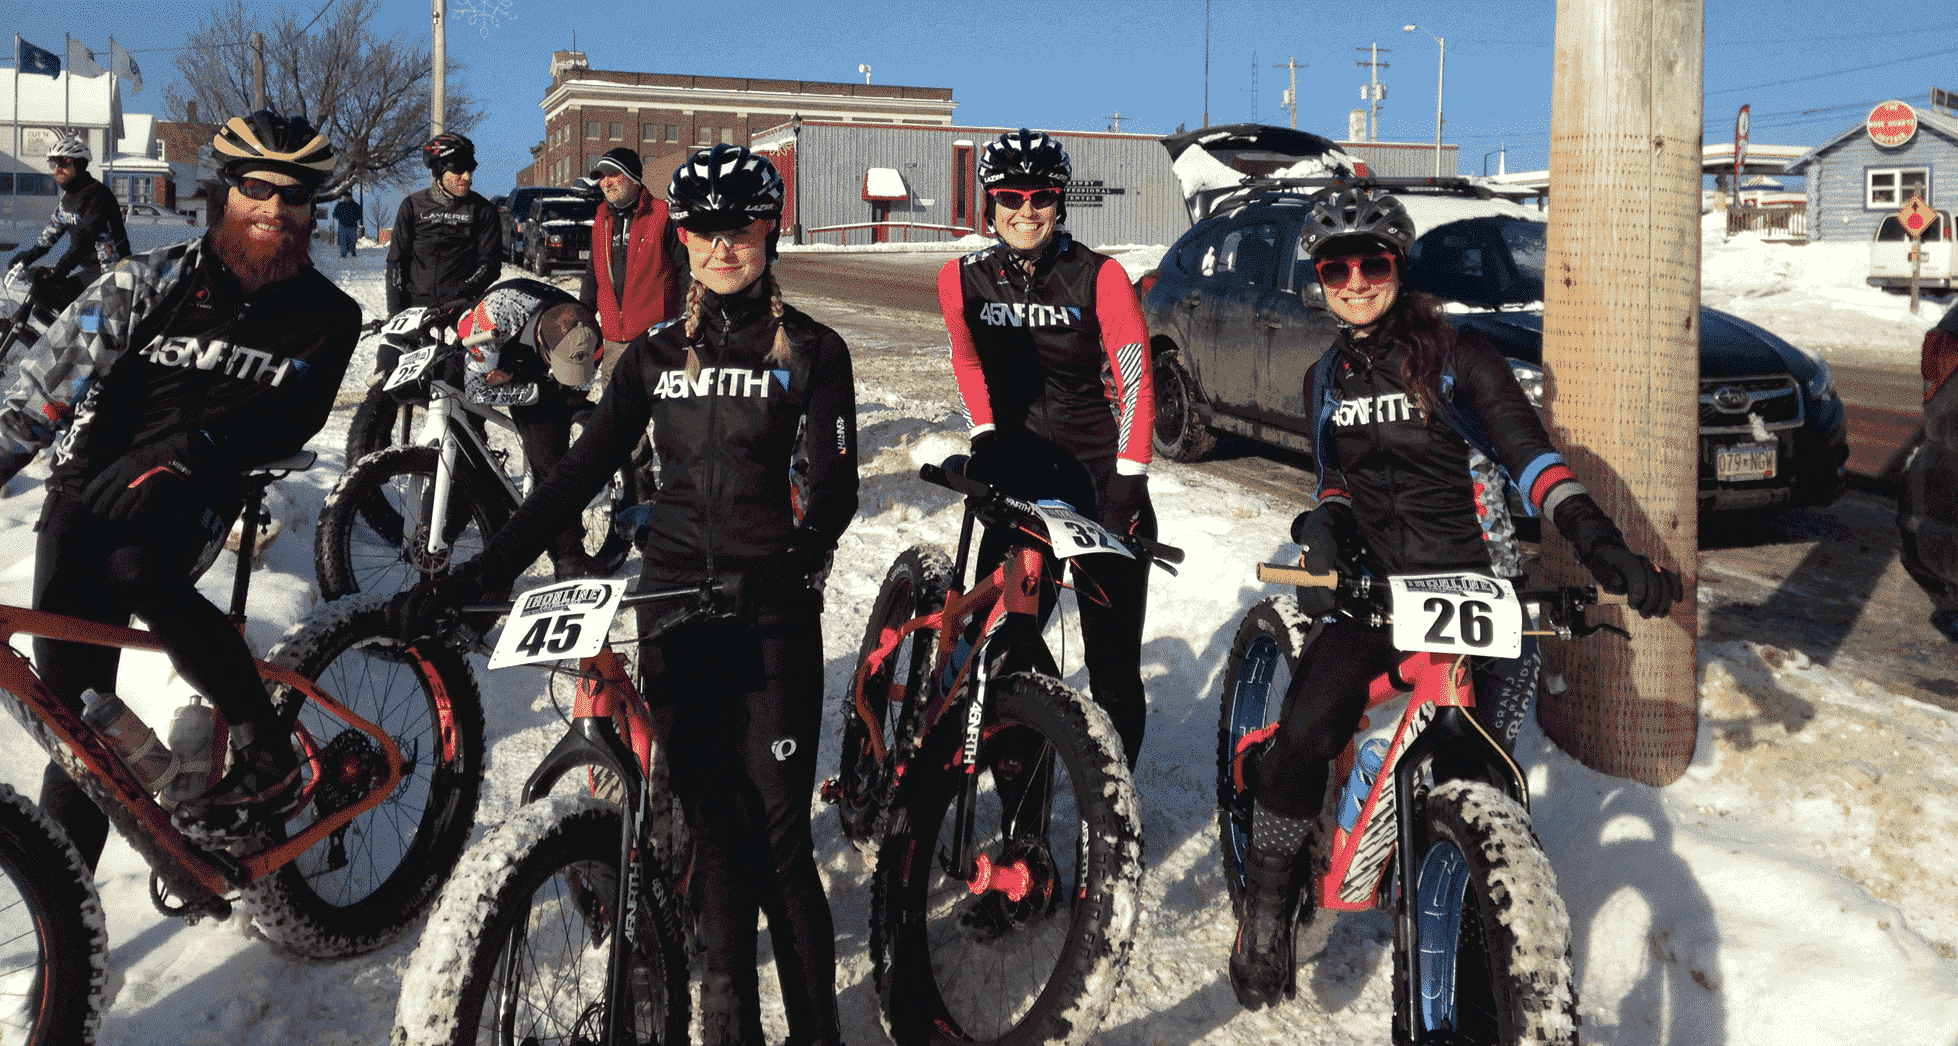 A group of four 45NRTH fat bike riders smiling and posing with their bikes